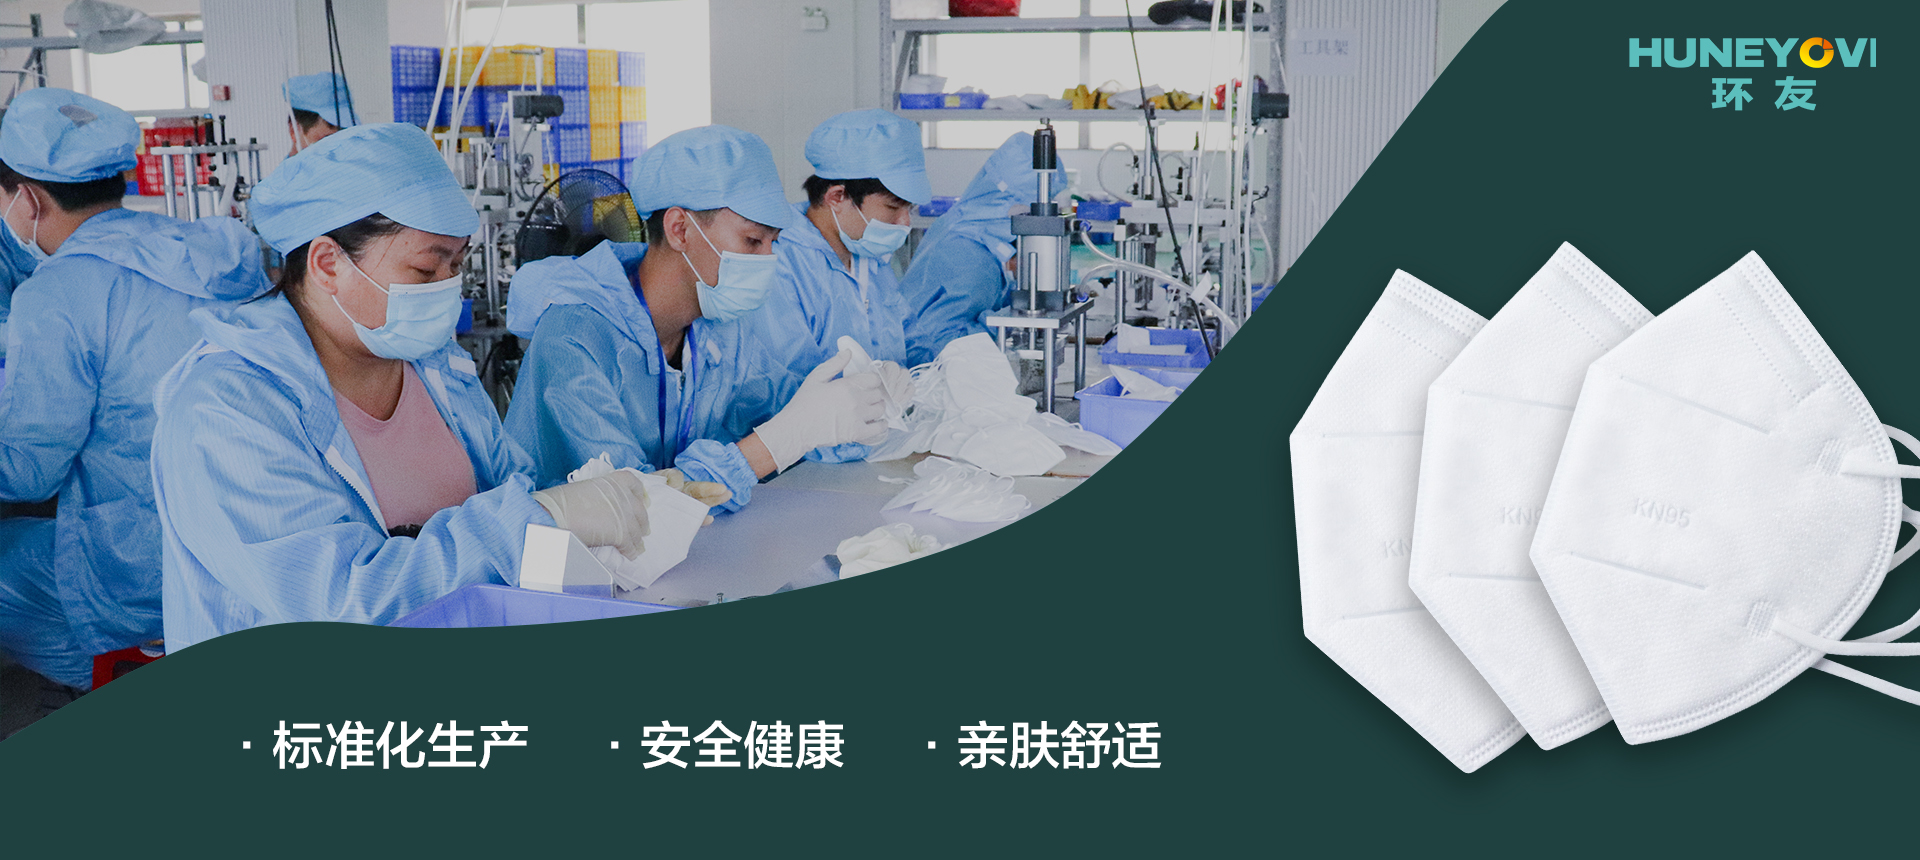 Doctor medical protection Kn95 gas mask